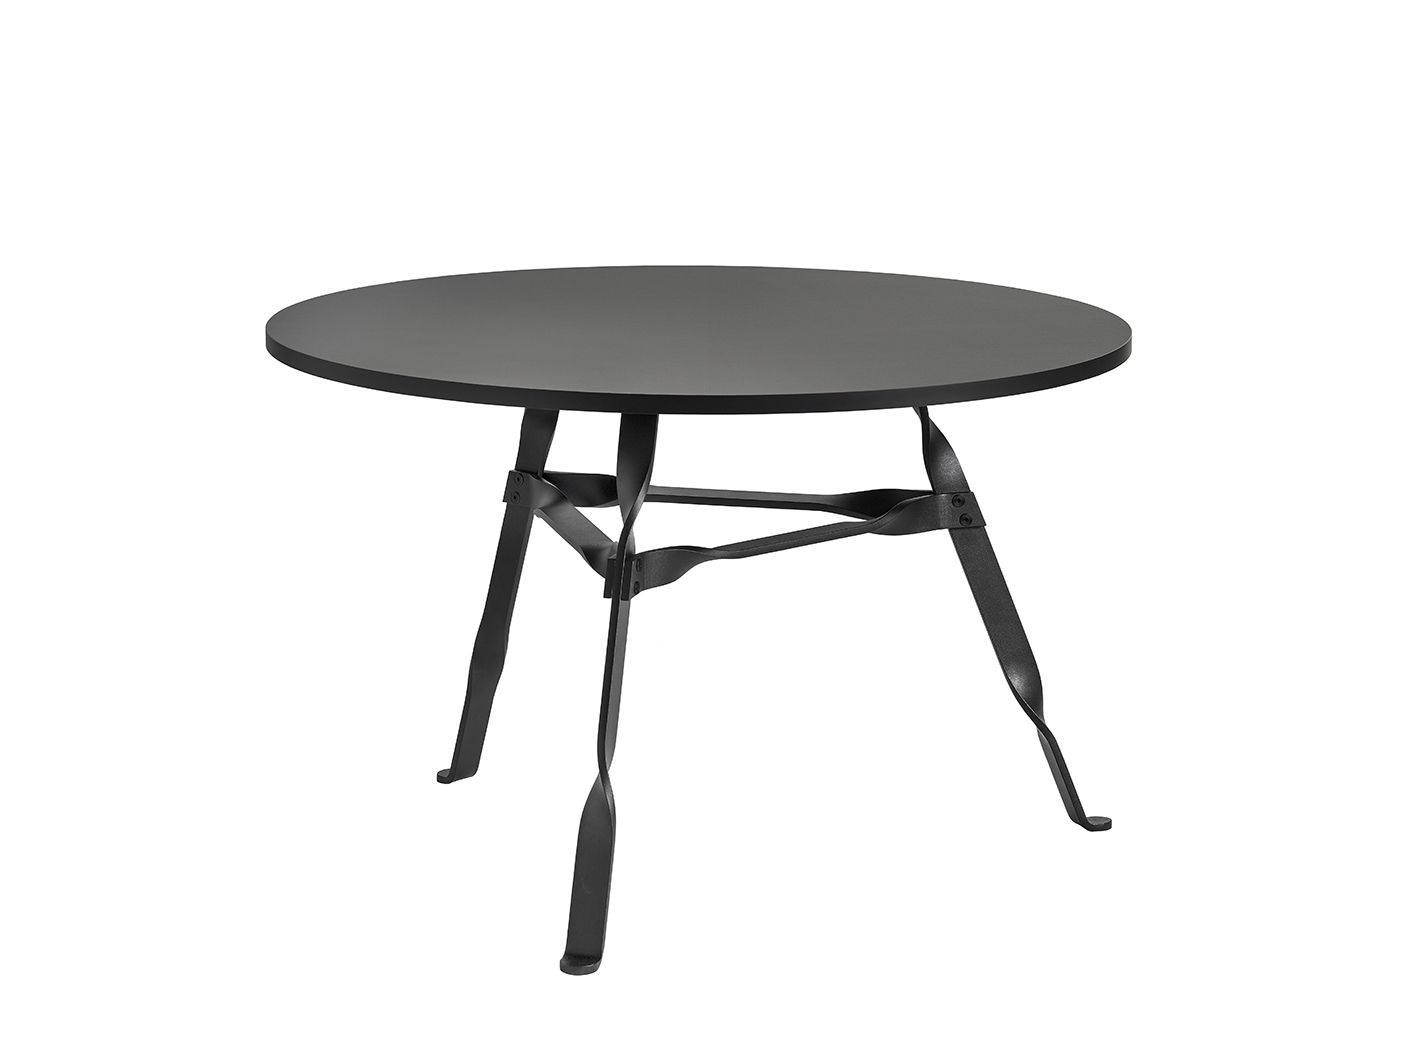 Twist Table Dining table, conference table, table in metal ...